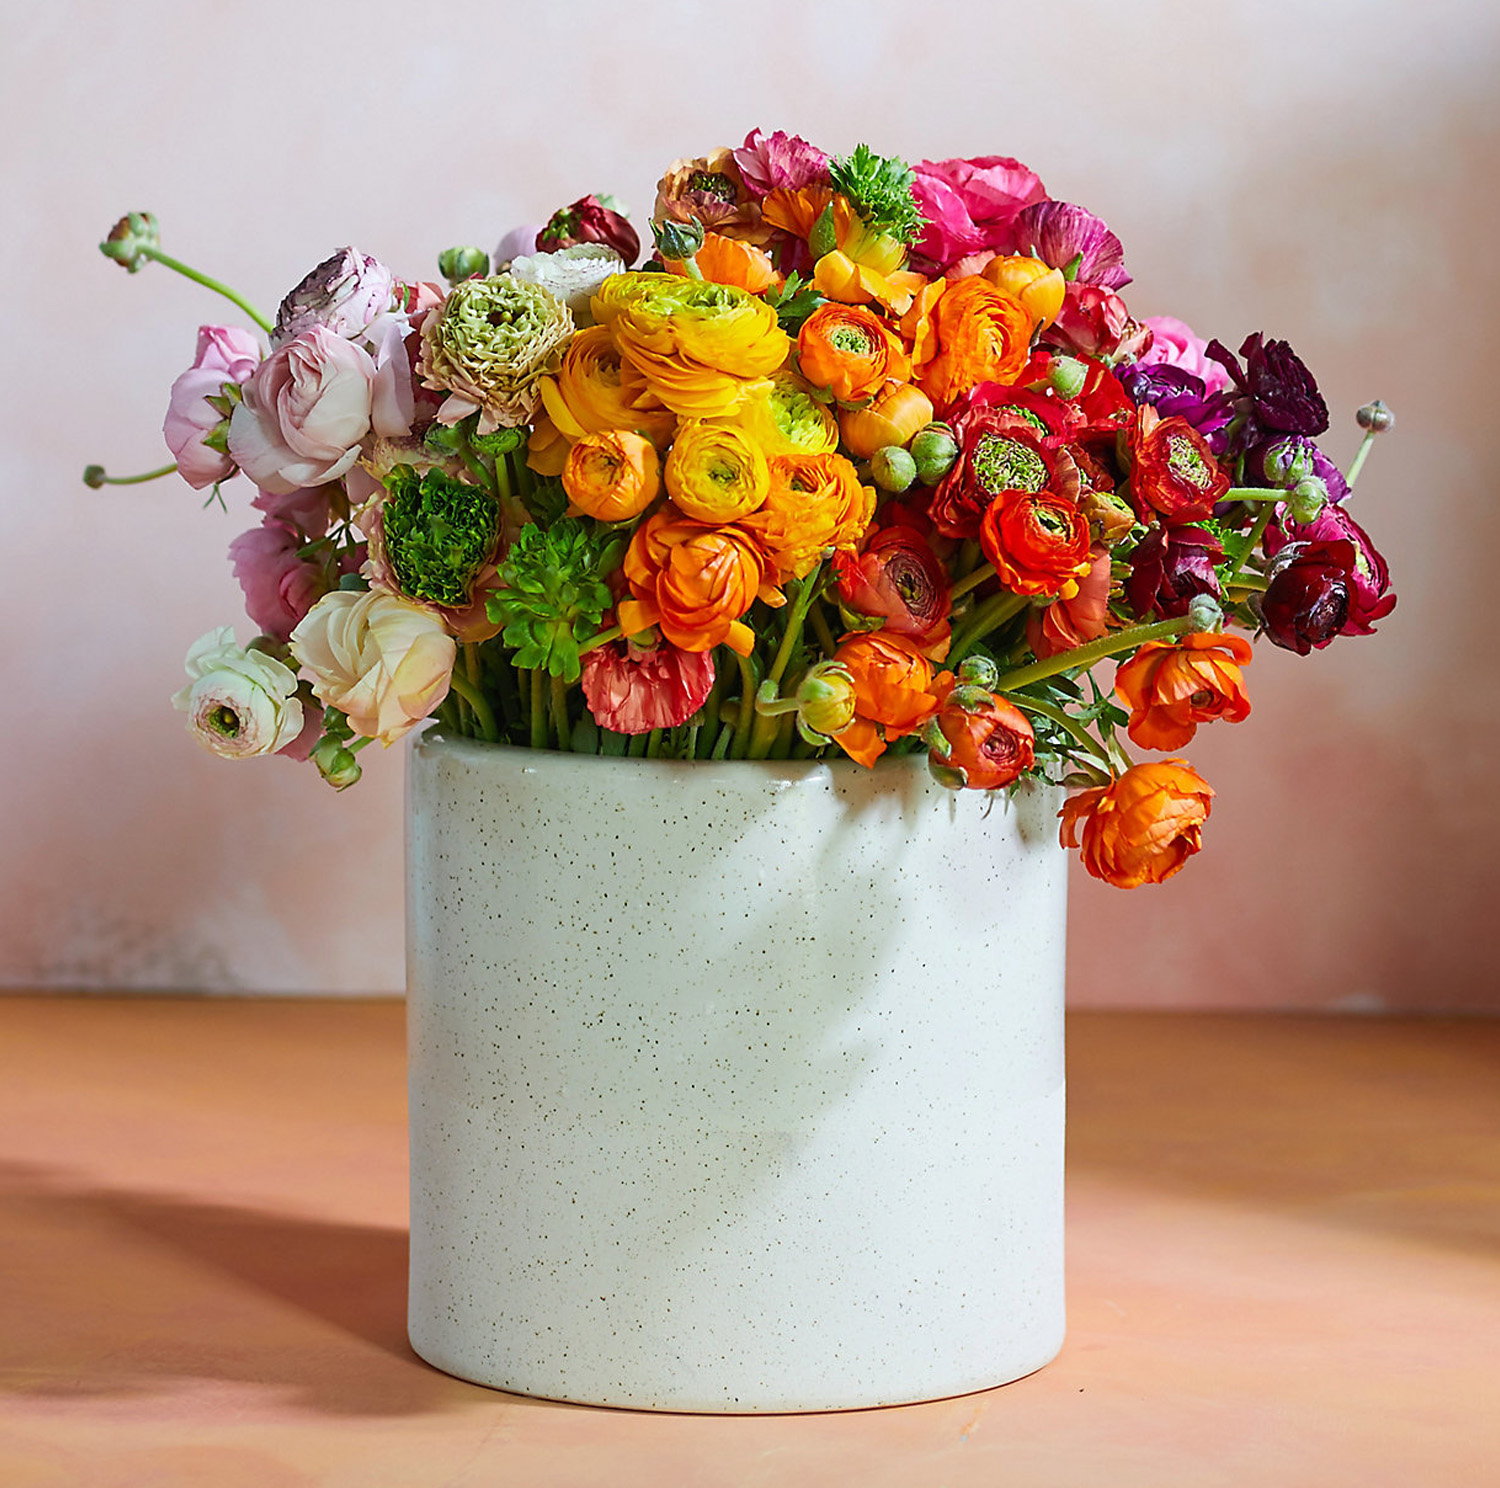 rainbow ranunculus bunch of flowers for mother's day